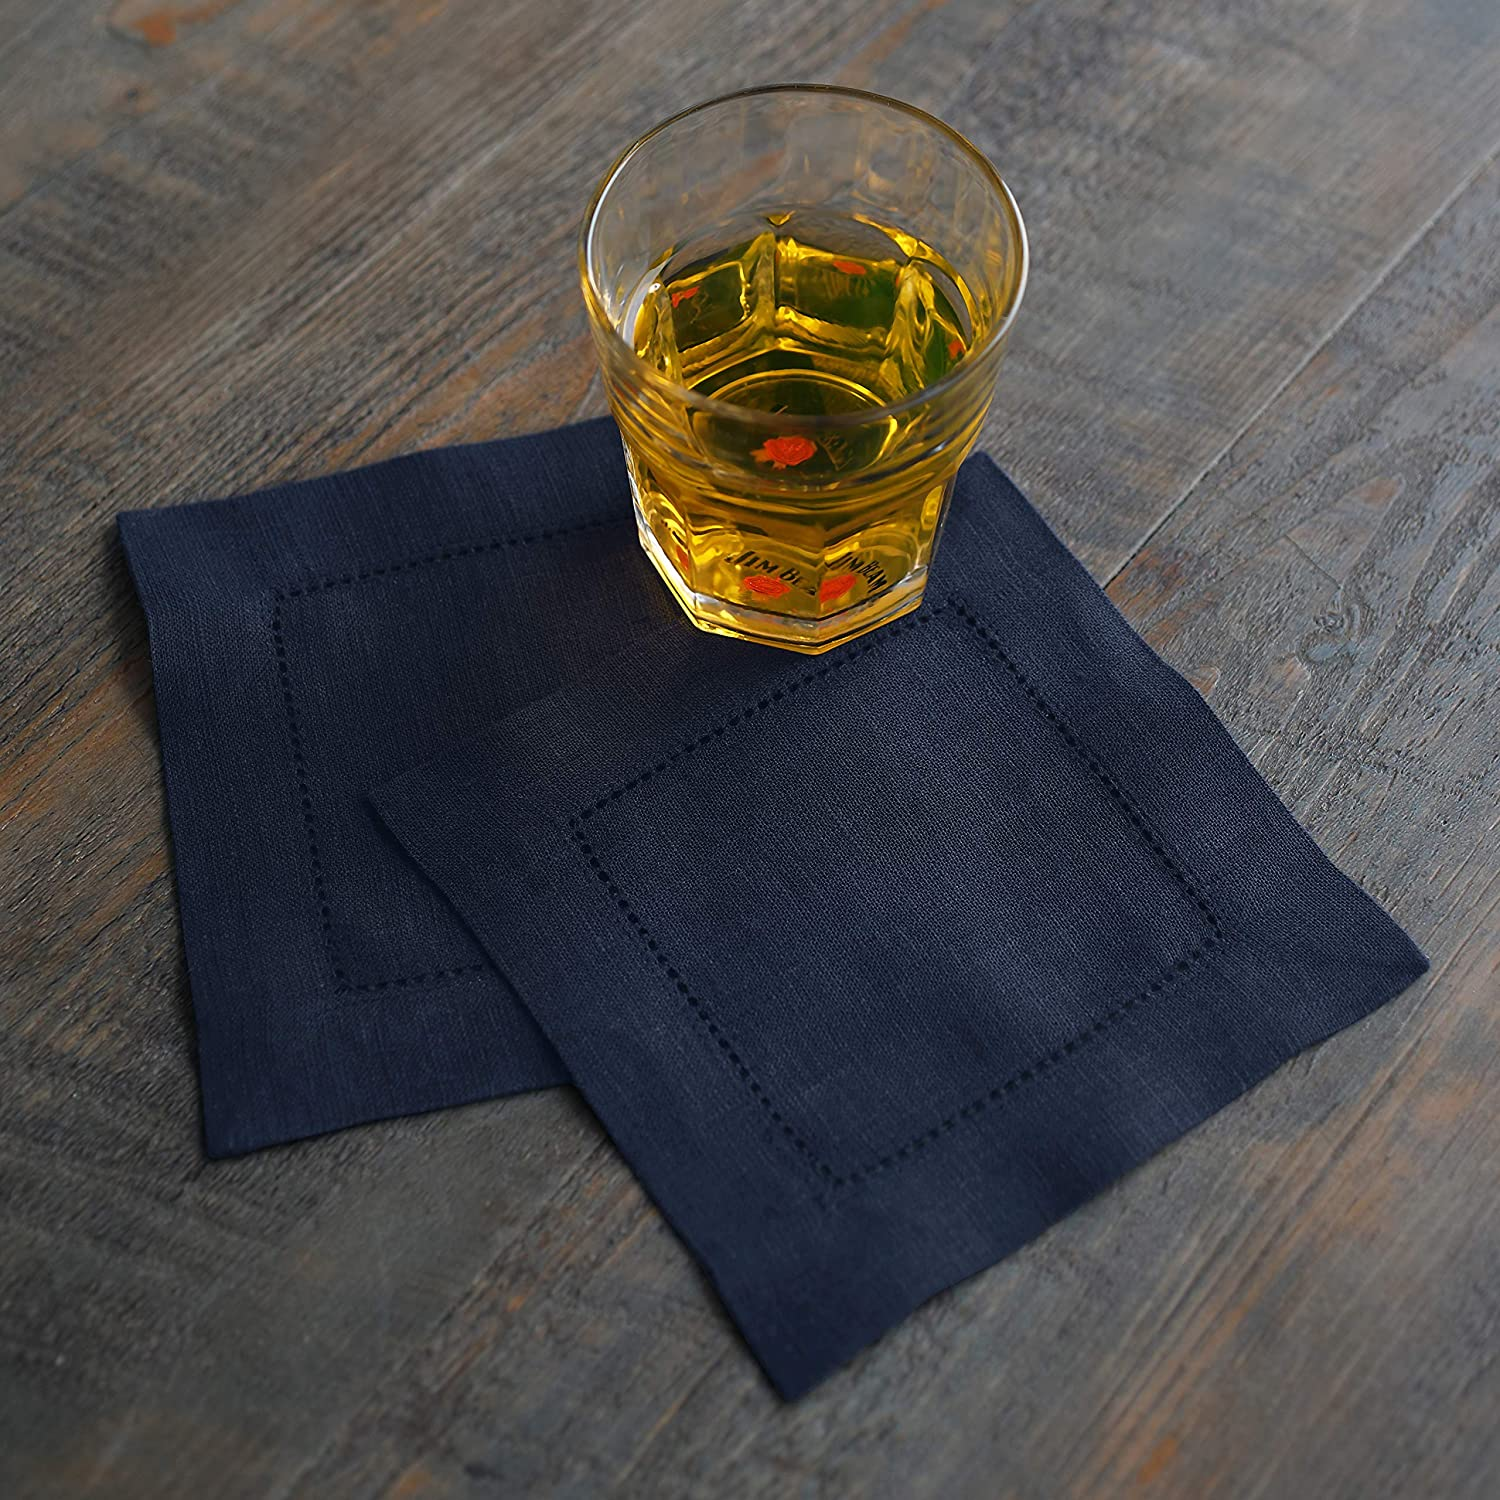 Set of 12 Solino Home Hemstitch Linen Cocktail Napkins 100/% European Flax Classic Hemstitch Napkin Coaster 6 x 6 Inch Black Pure Natural Fabric Handcrafted with Mitered Corners